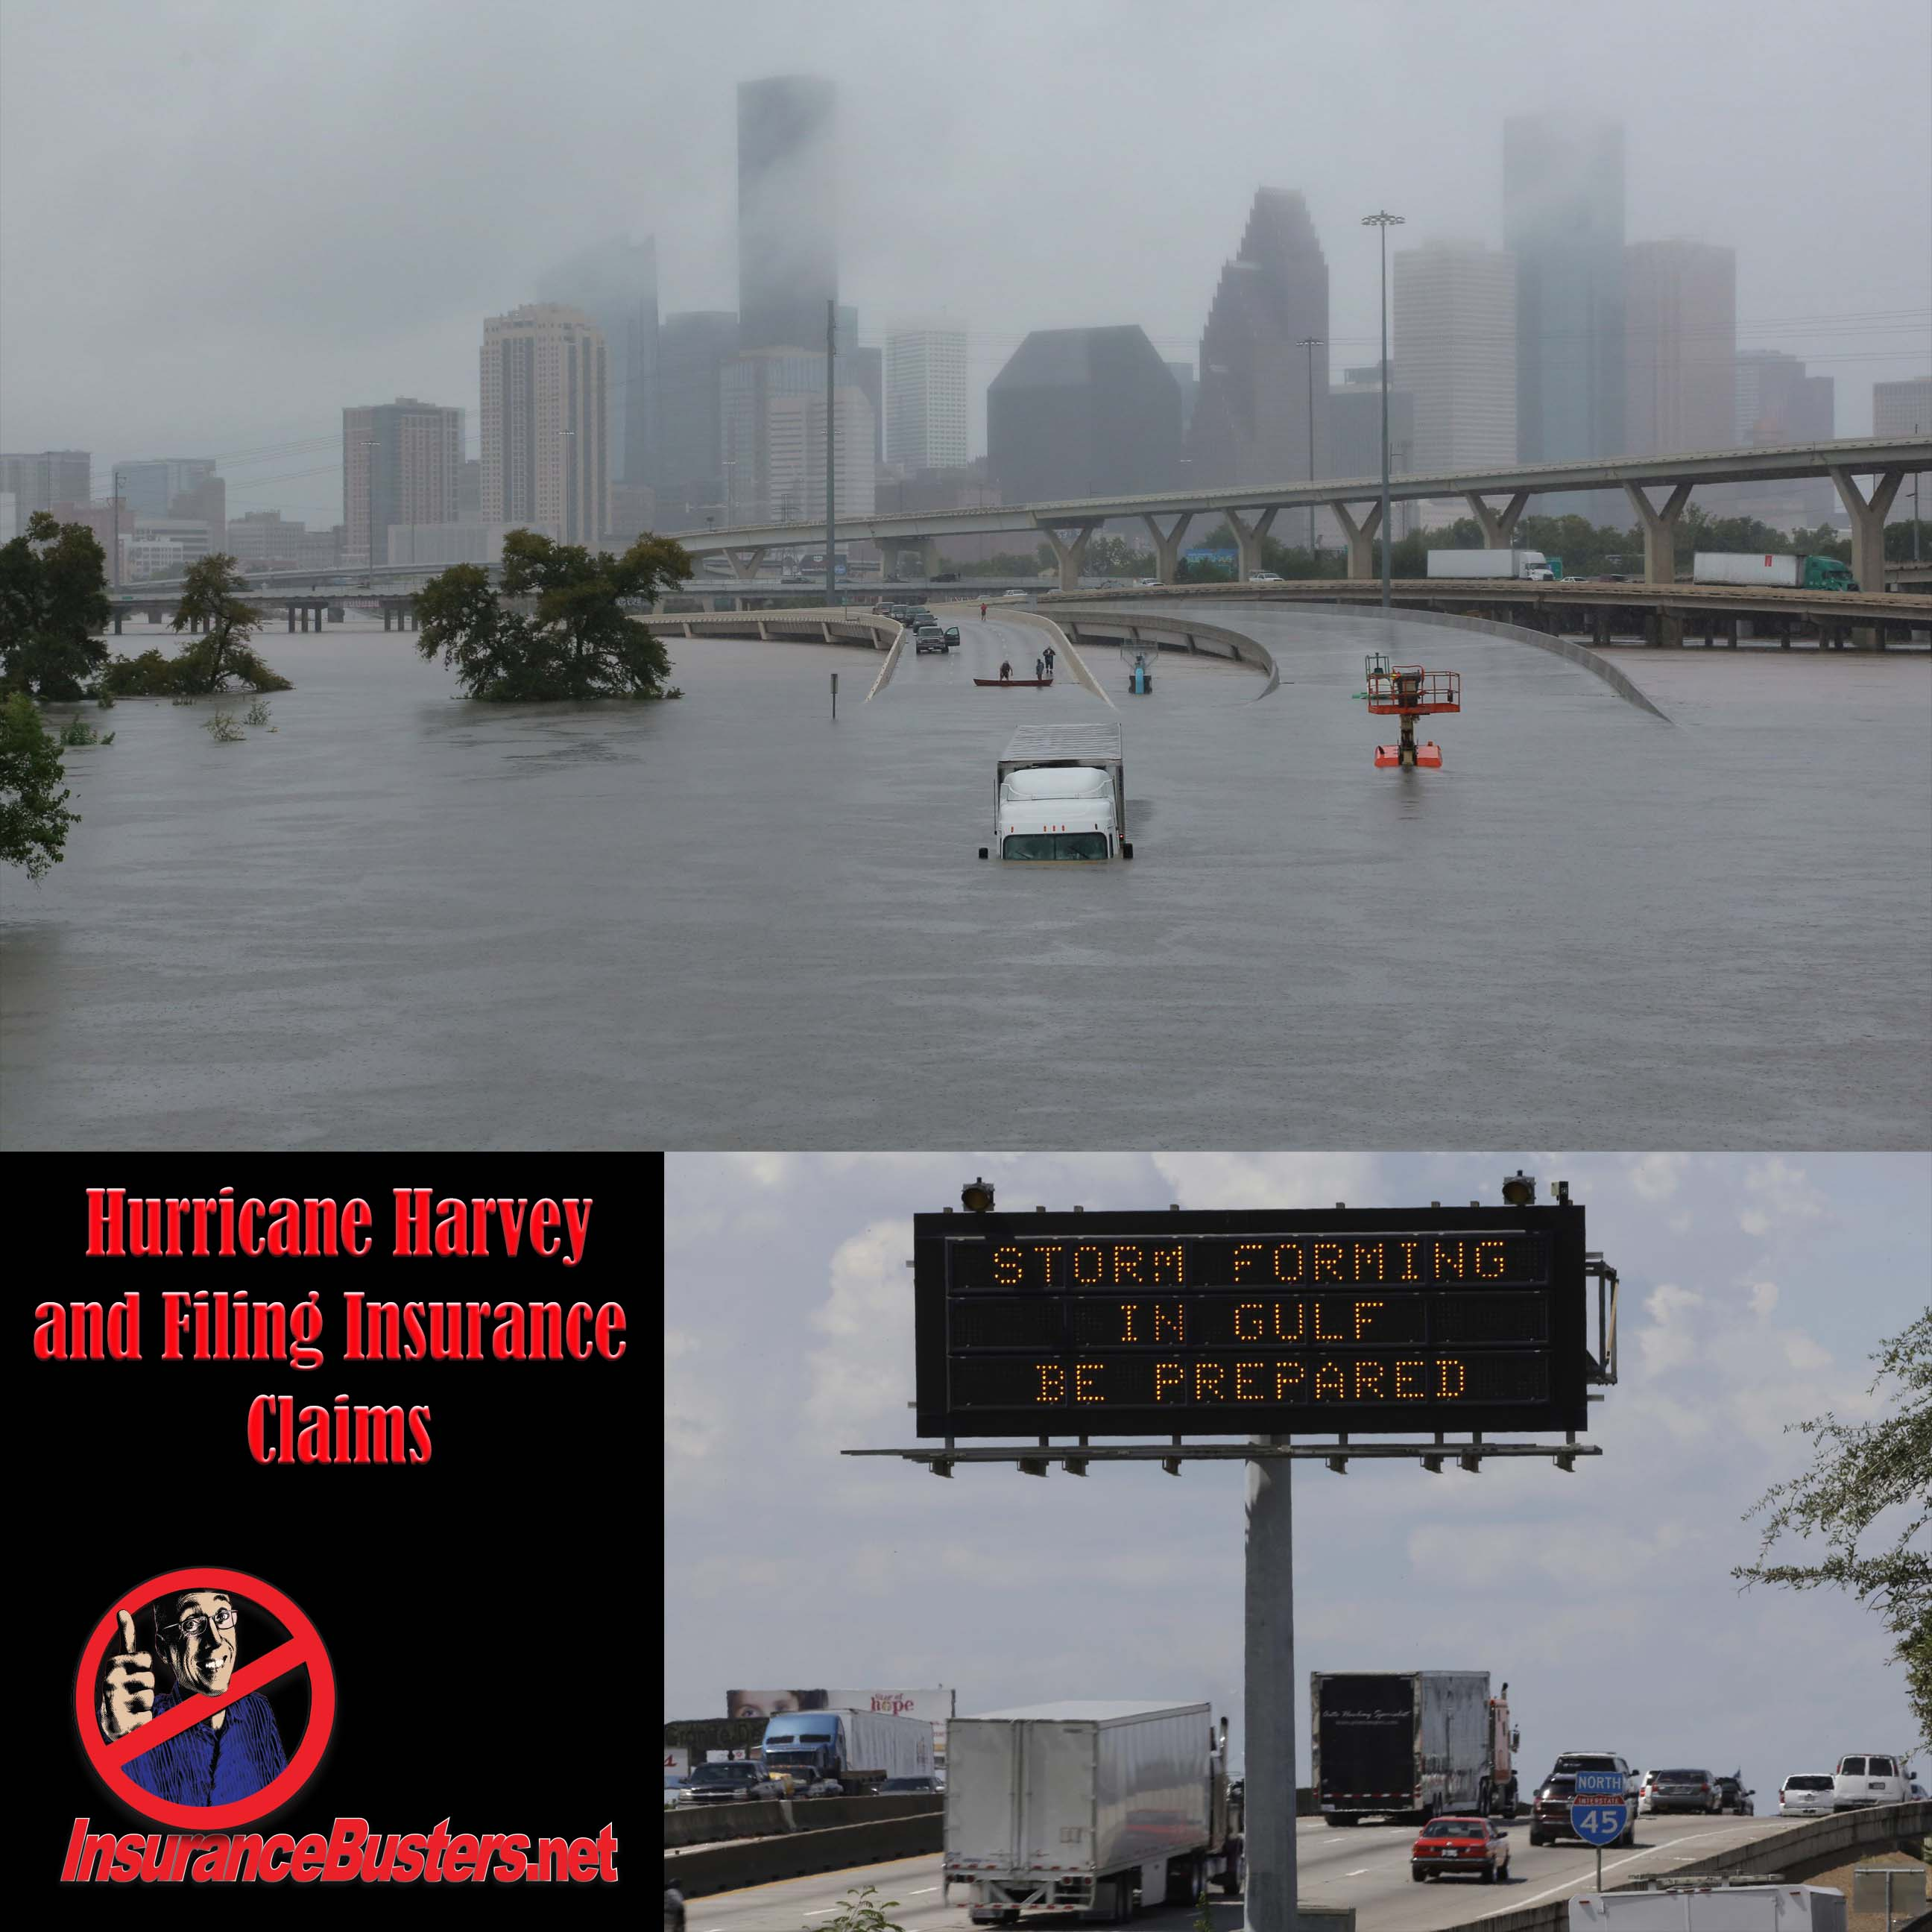 Hurricane Harvey Insurance Claims - What you don't know can severely limit recovery.